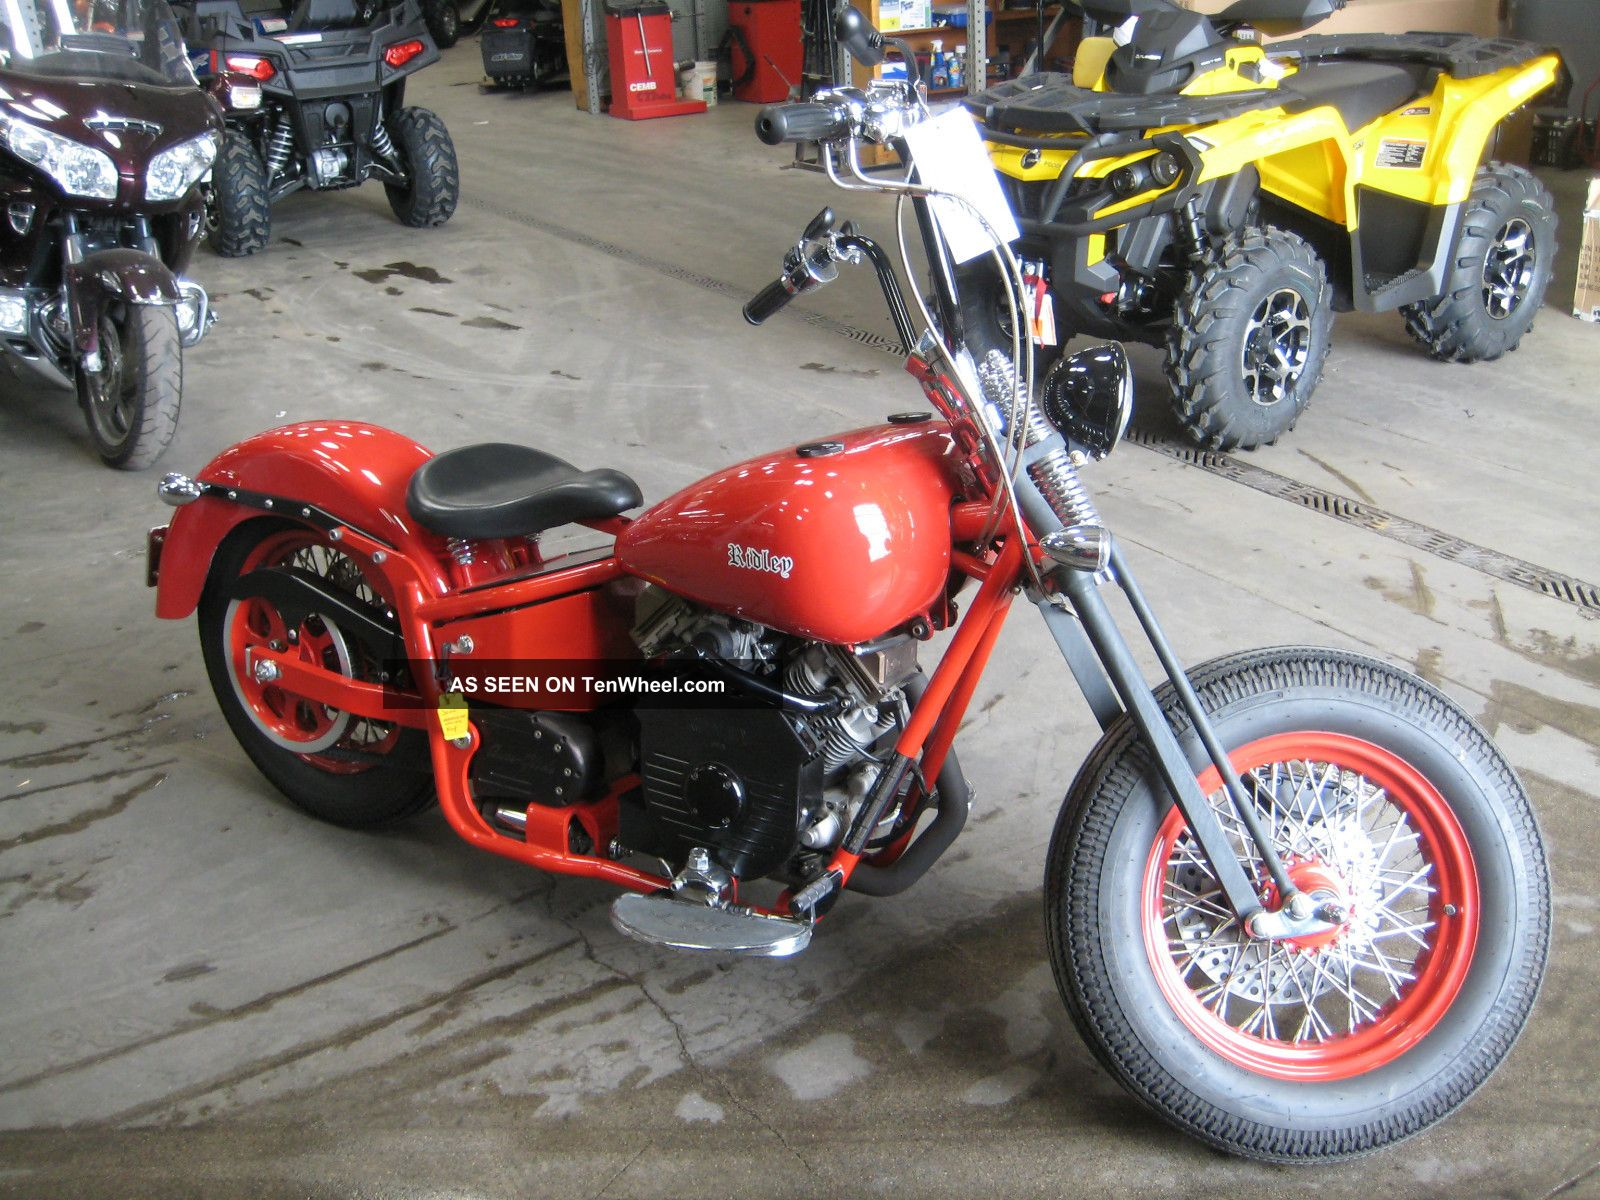 2007 Ridley Auto - Glide Old School Motorcycle Auto Glide Bike Bobber Cruiser Other Makes photo